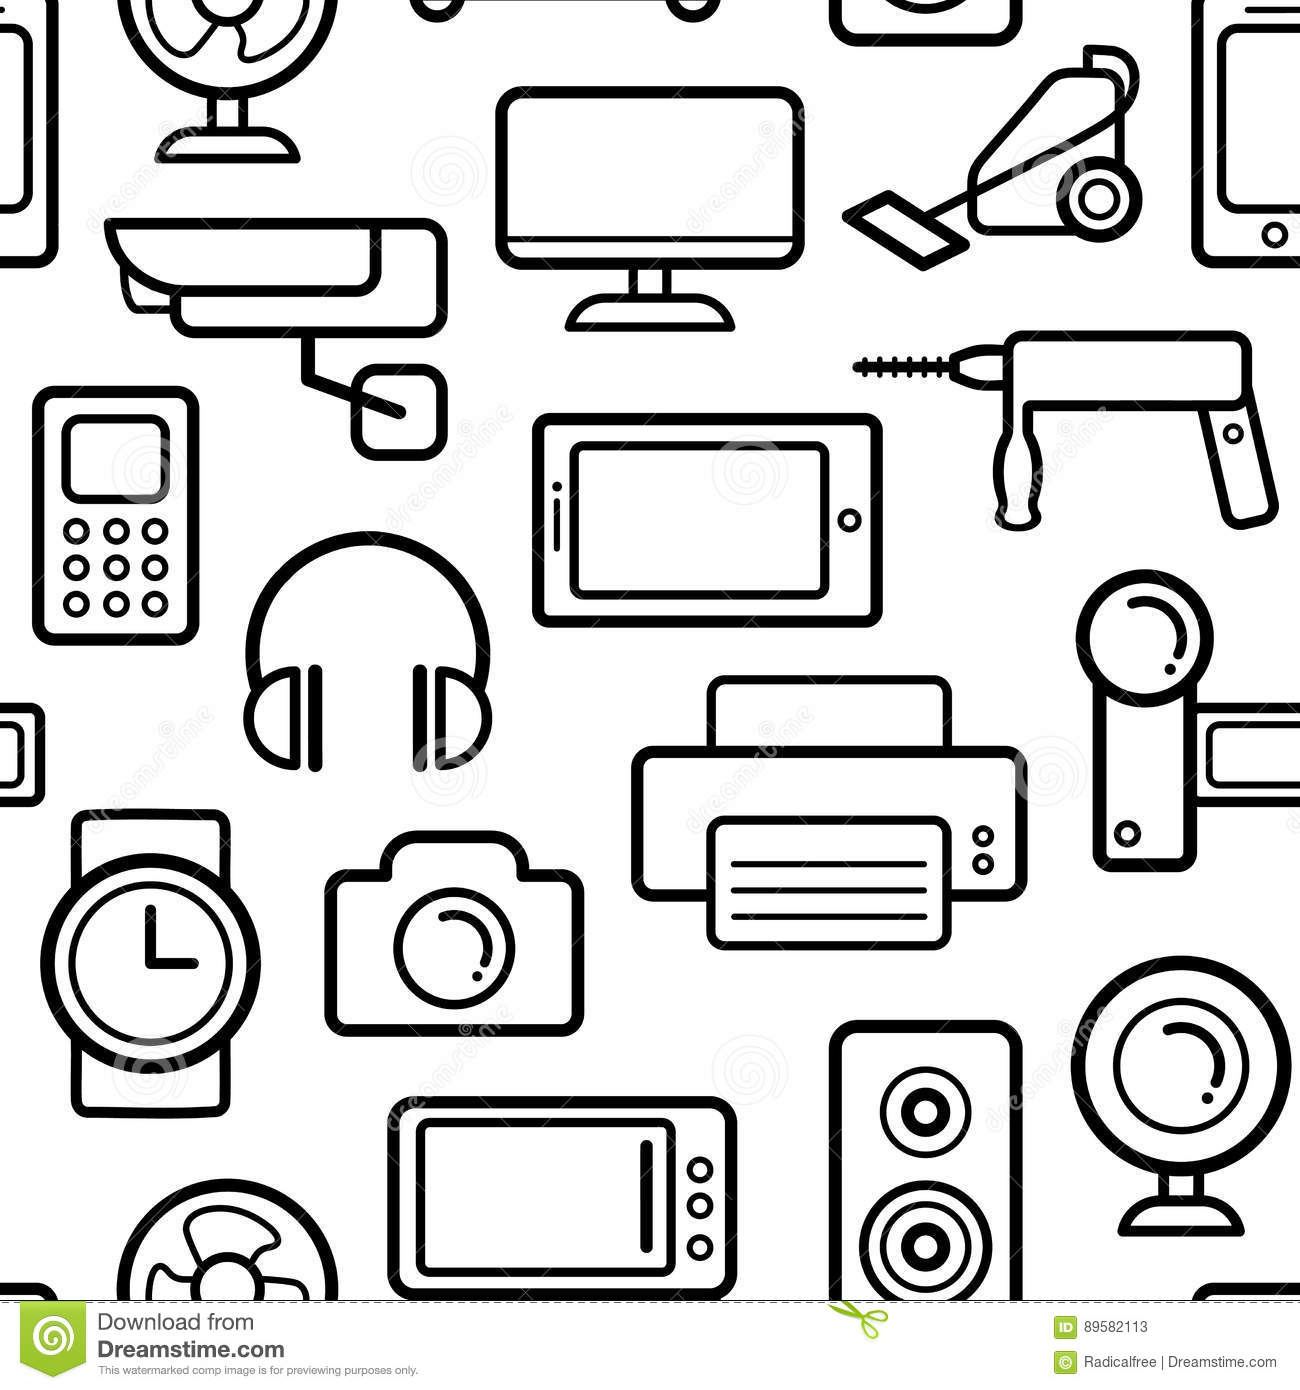 Line Art Icons : Line art household cleaning symbols accessories cartoon